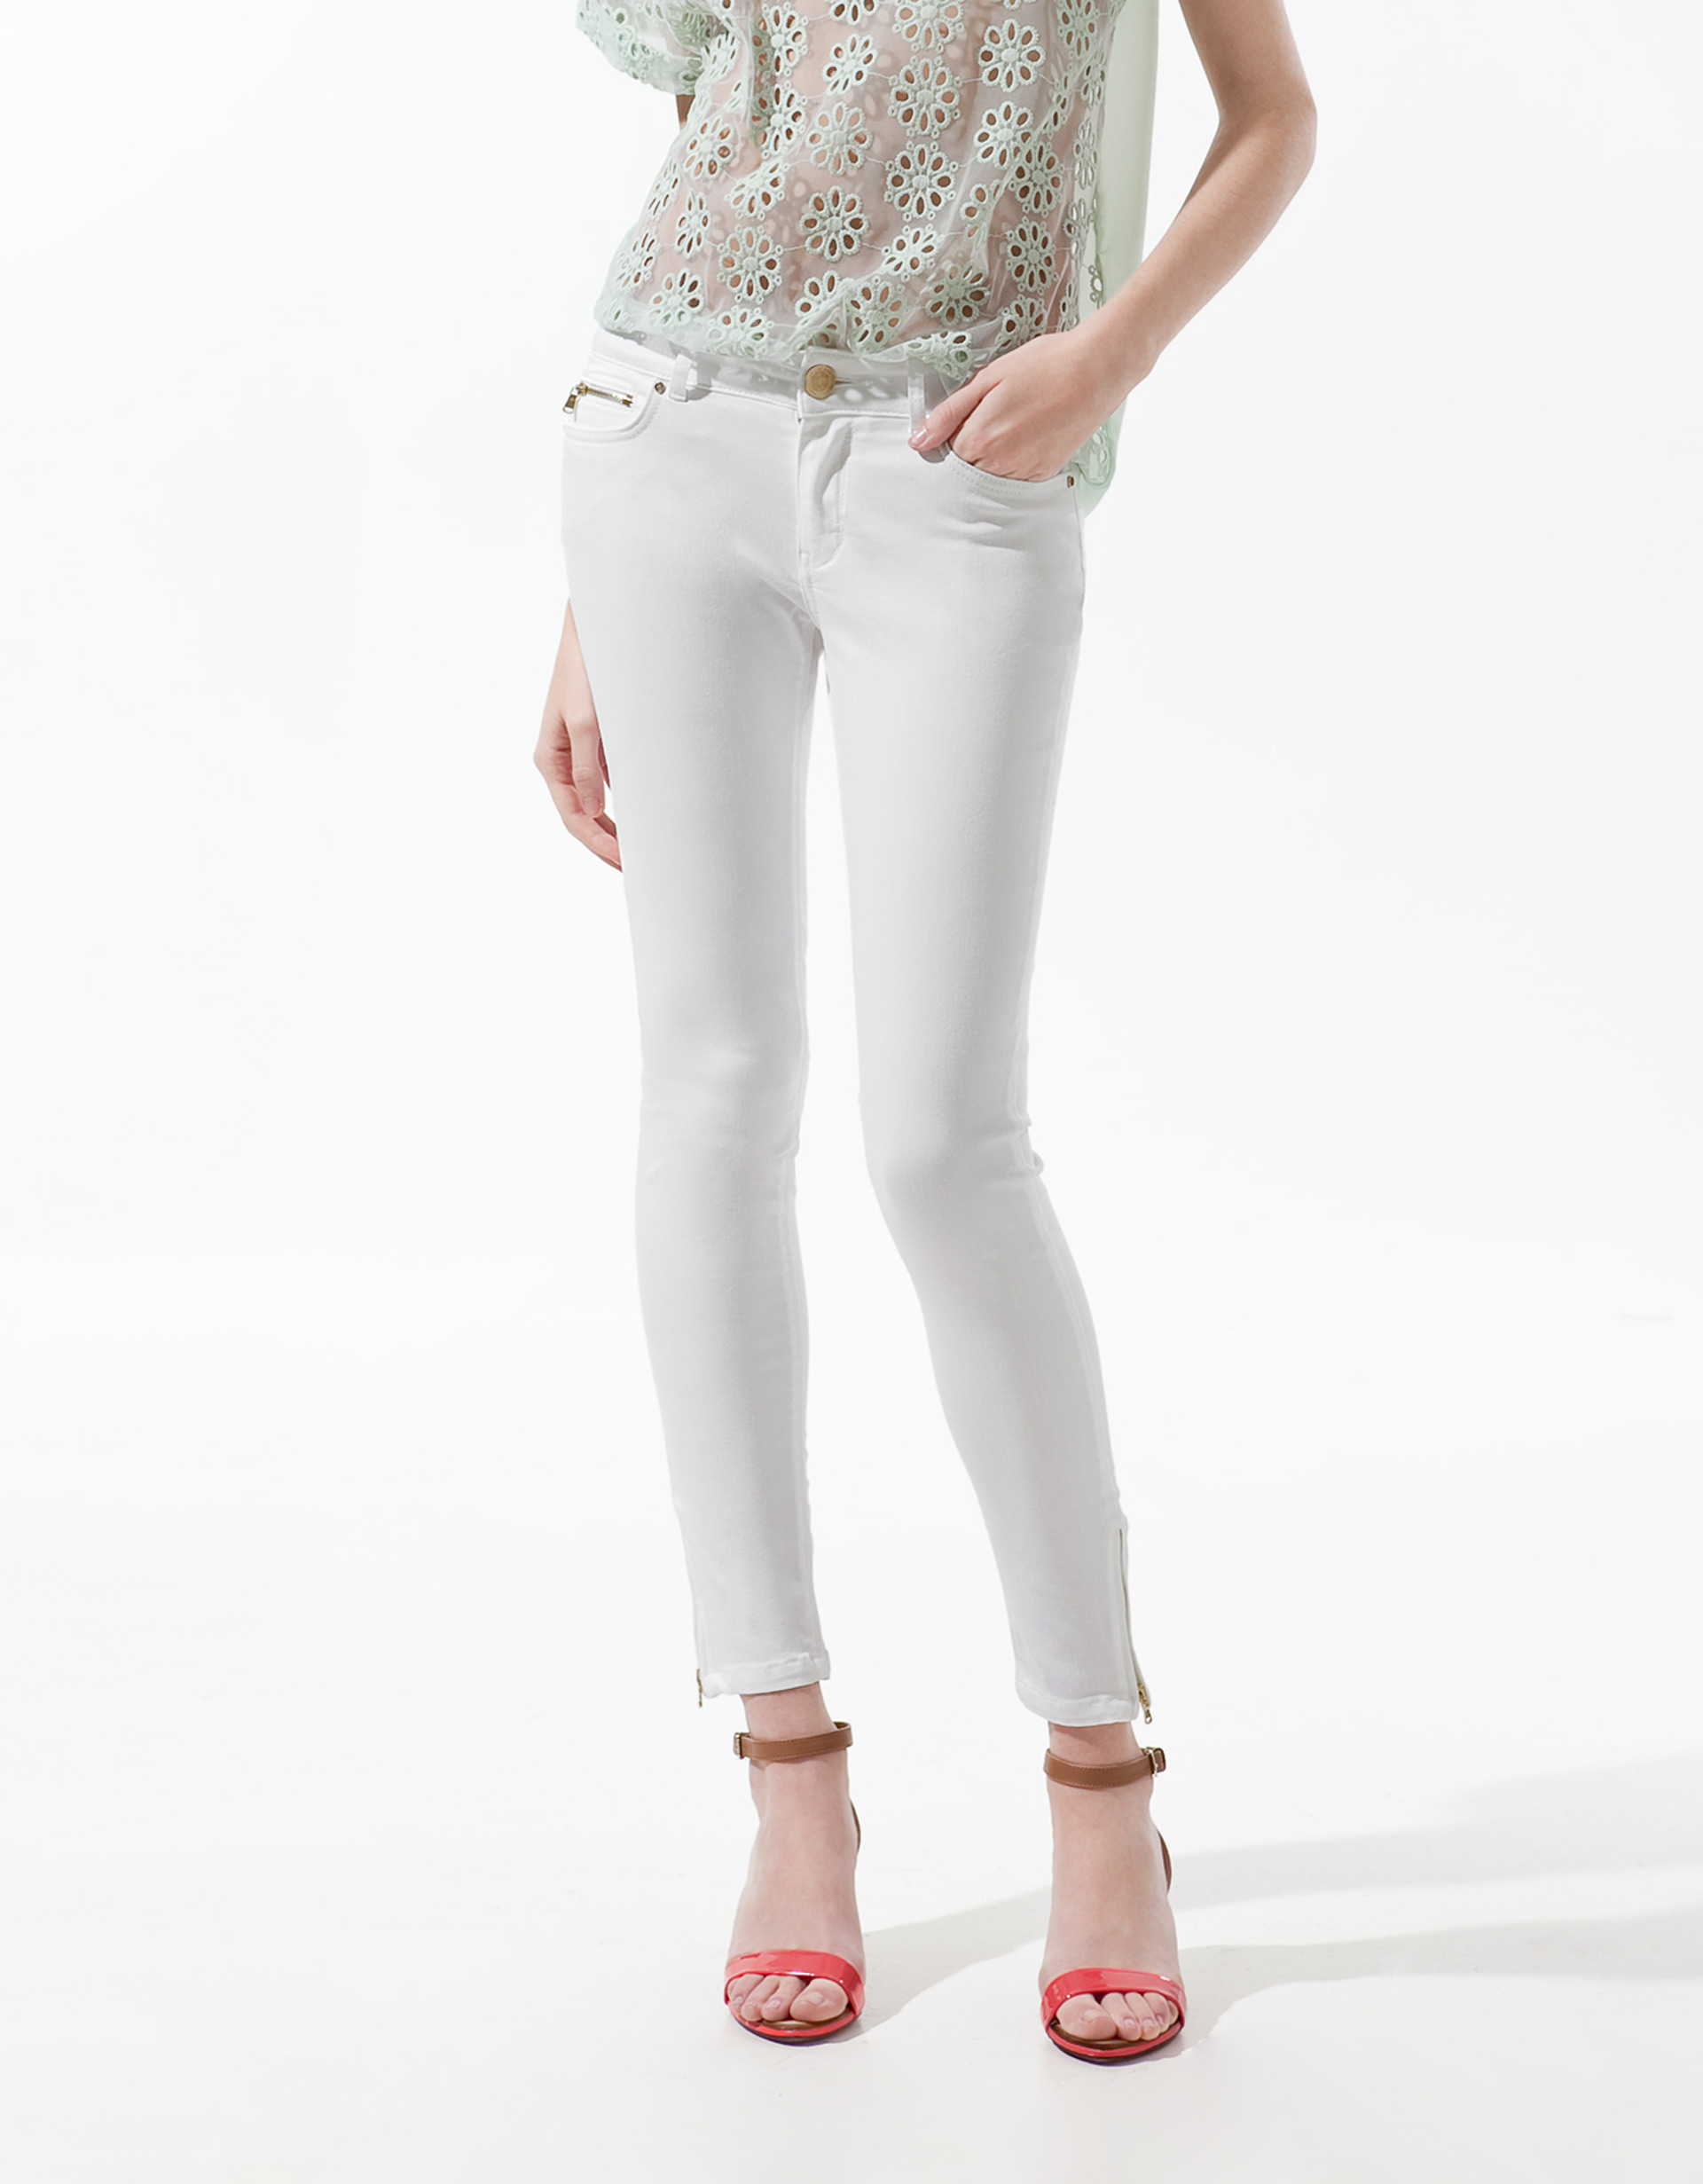 Shop white denim skinny jeans at Neiman Marcus, where you will find free shipping on the latest in fashion from top designers.